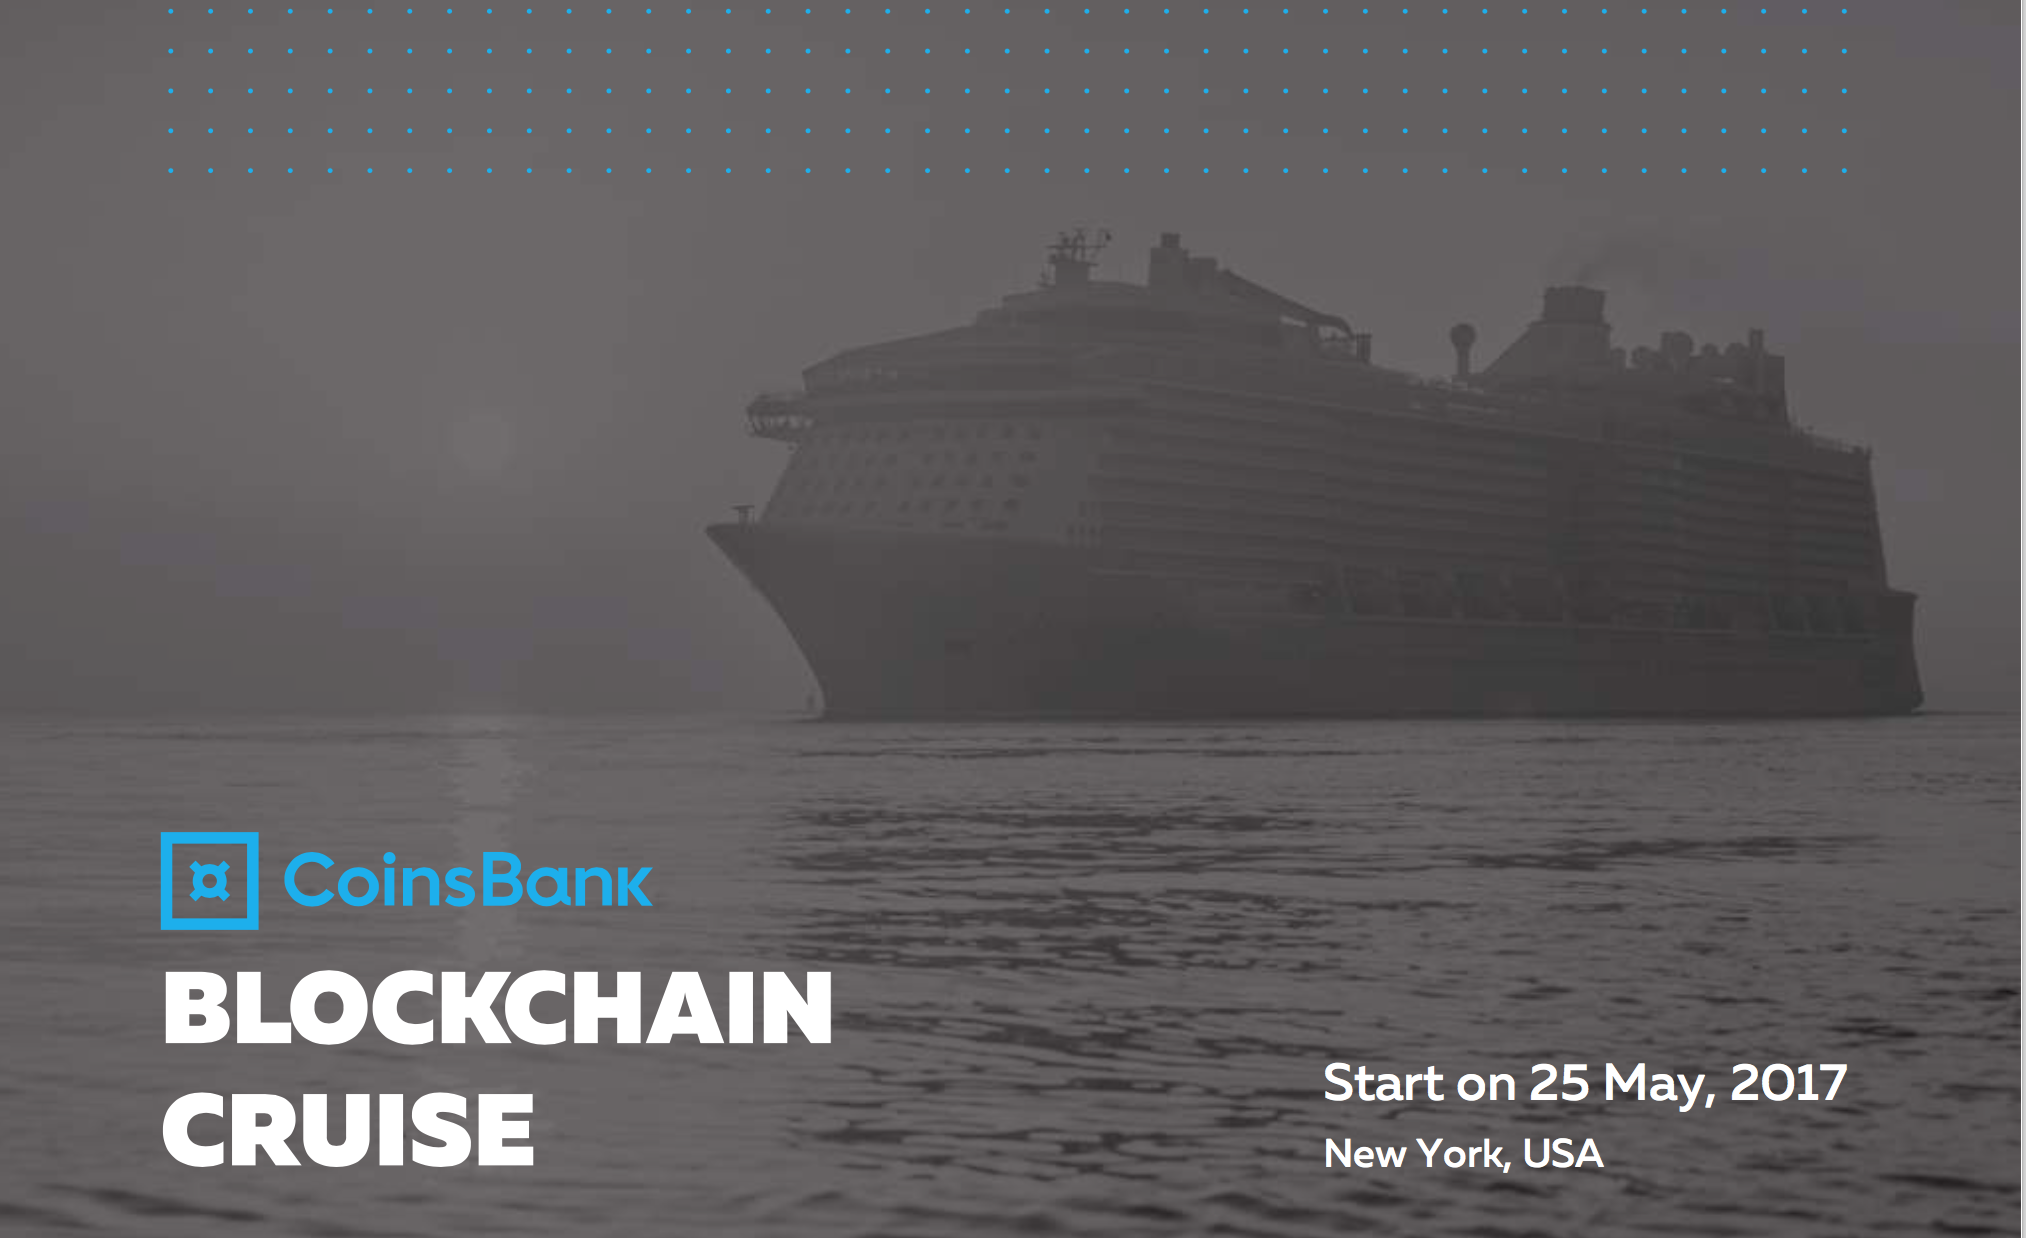 coins bank organizes blockchain conference cruise